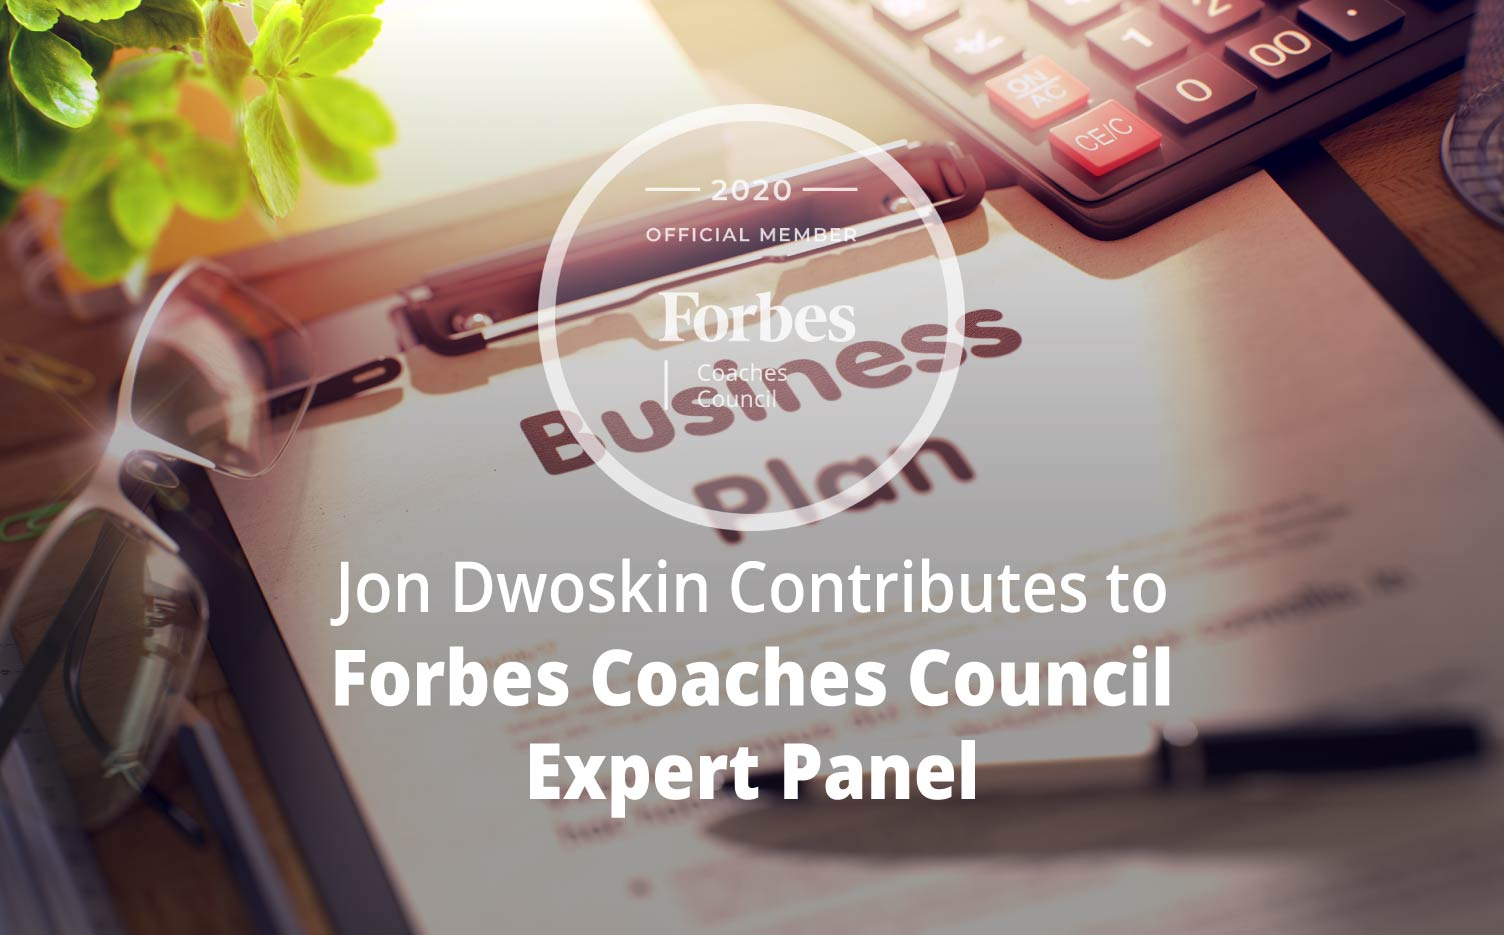 Jon Dwoskin Contributes to Forbes Coaches Council Expert Panel: 13 Transparent Ways To Set Expectations For Employees